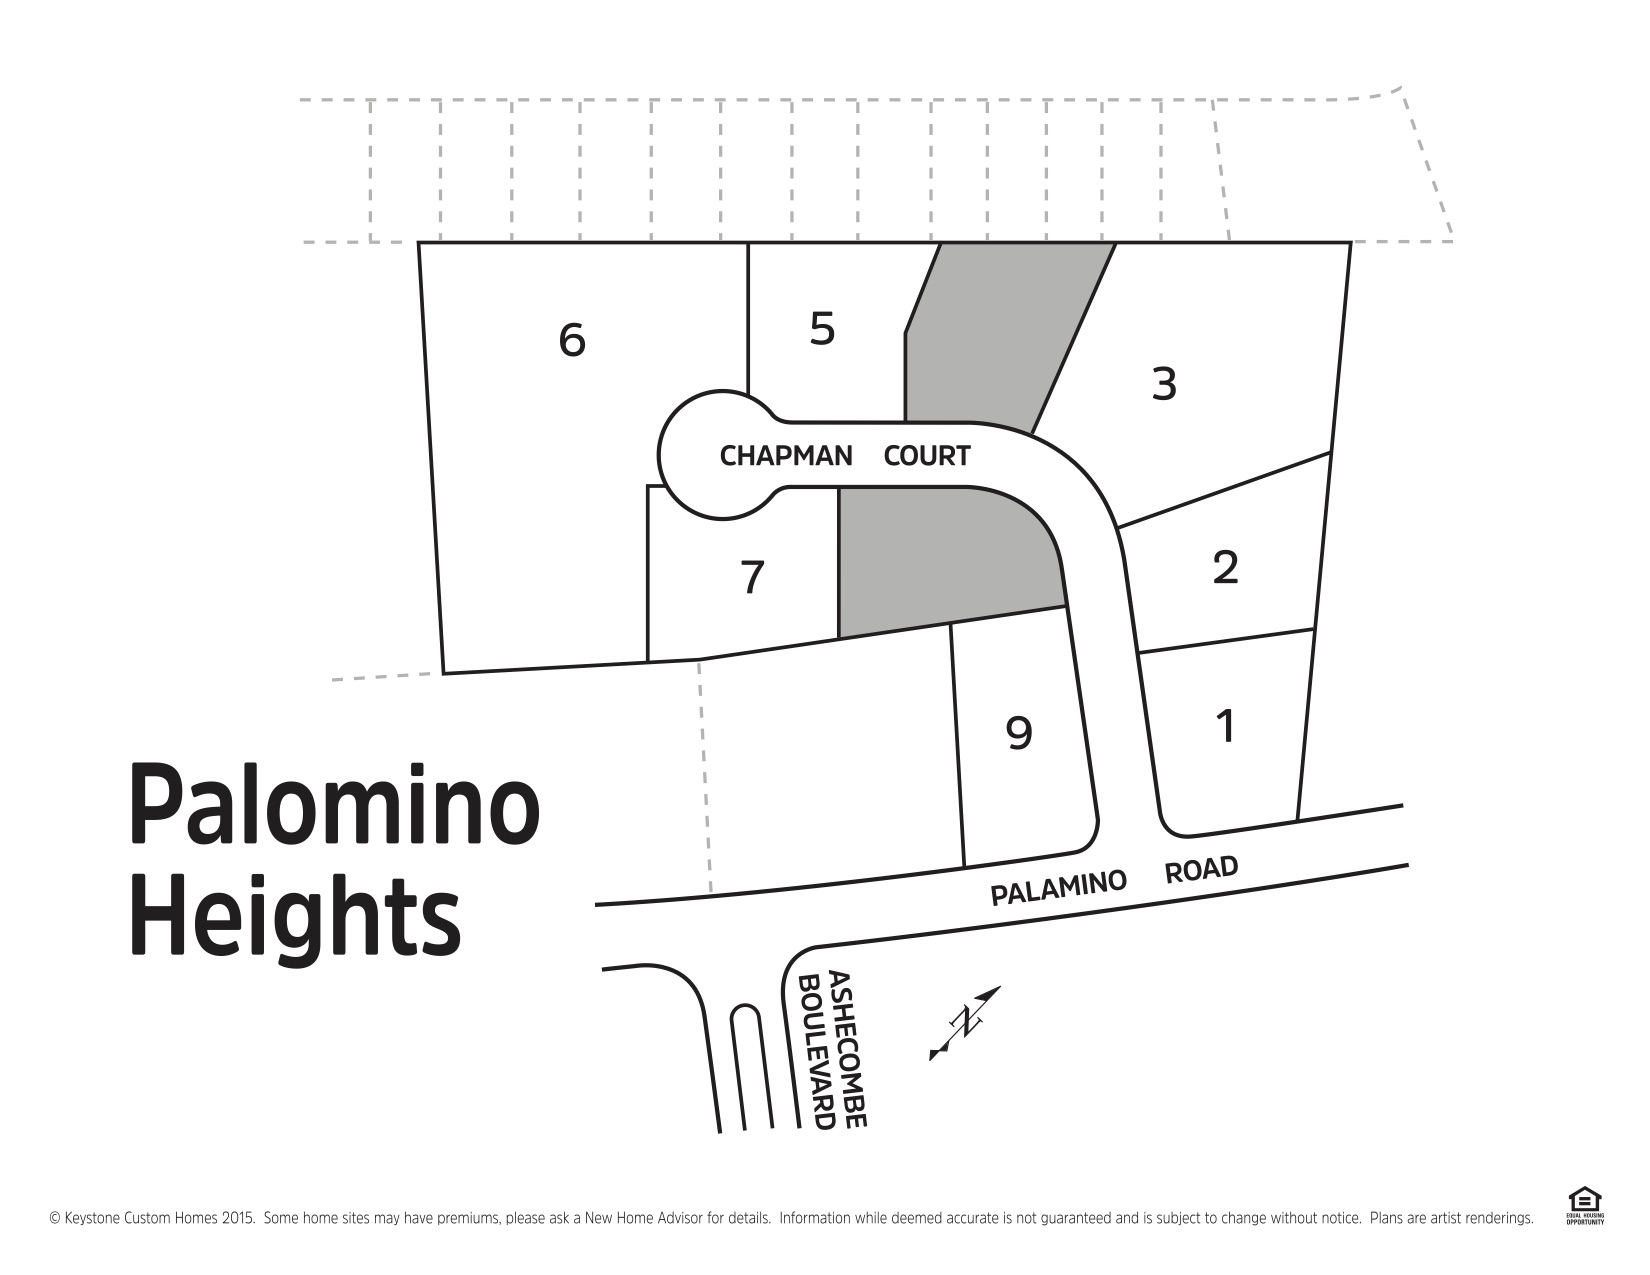 Palomino Heights Lot Map Background